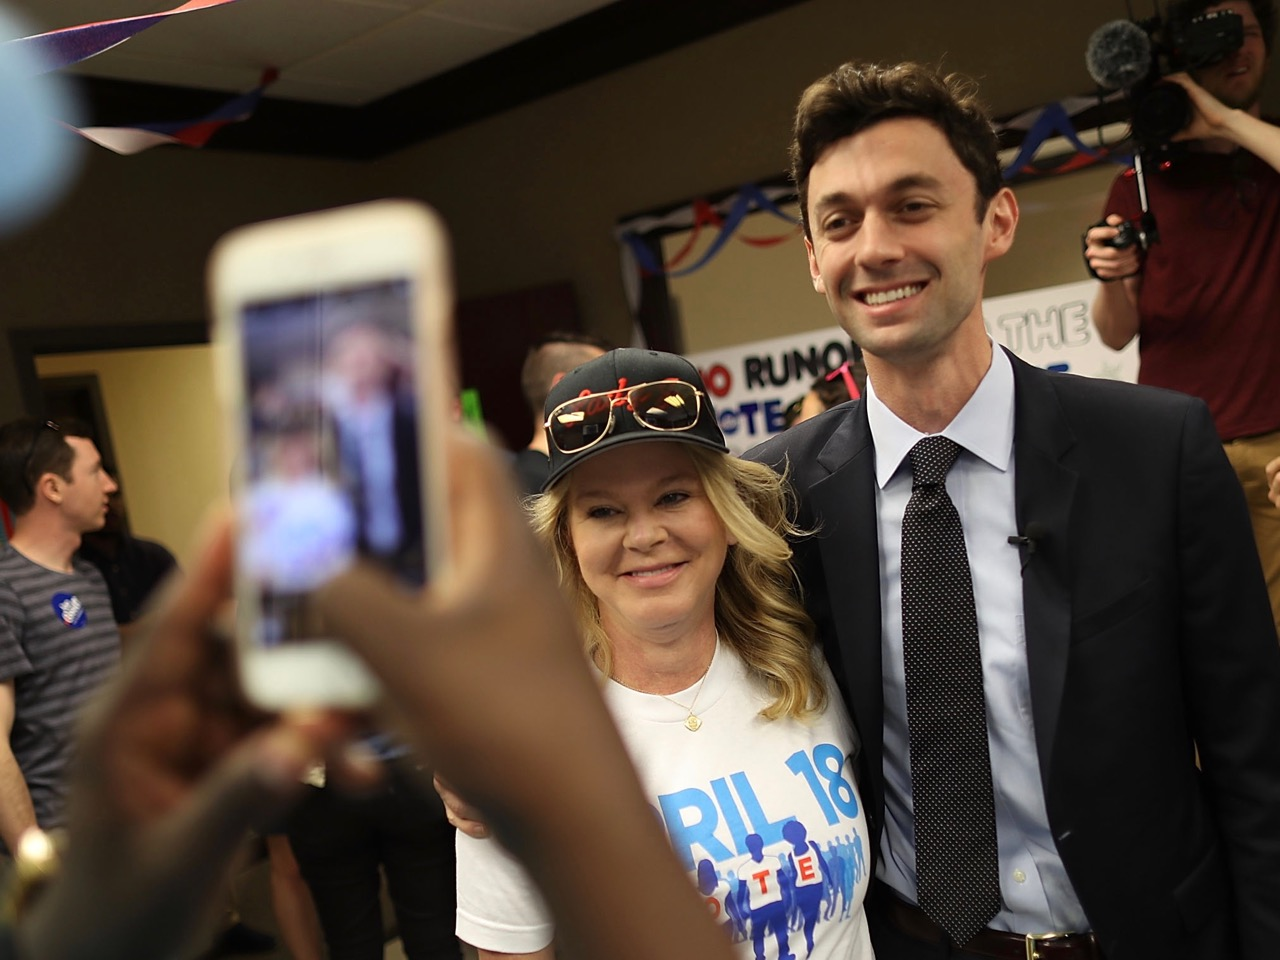 Democratic Congressional Candidate For Georgia's 6th District Jon Ossoff Campaigns Ahead Of Tuesday's Special Election